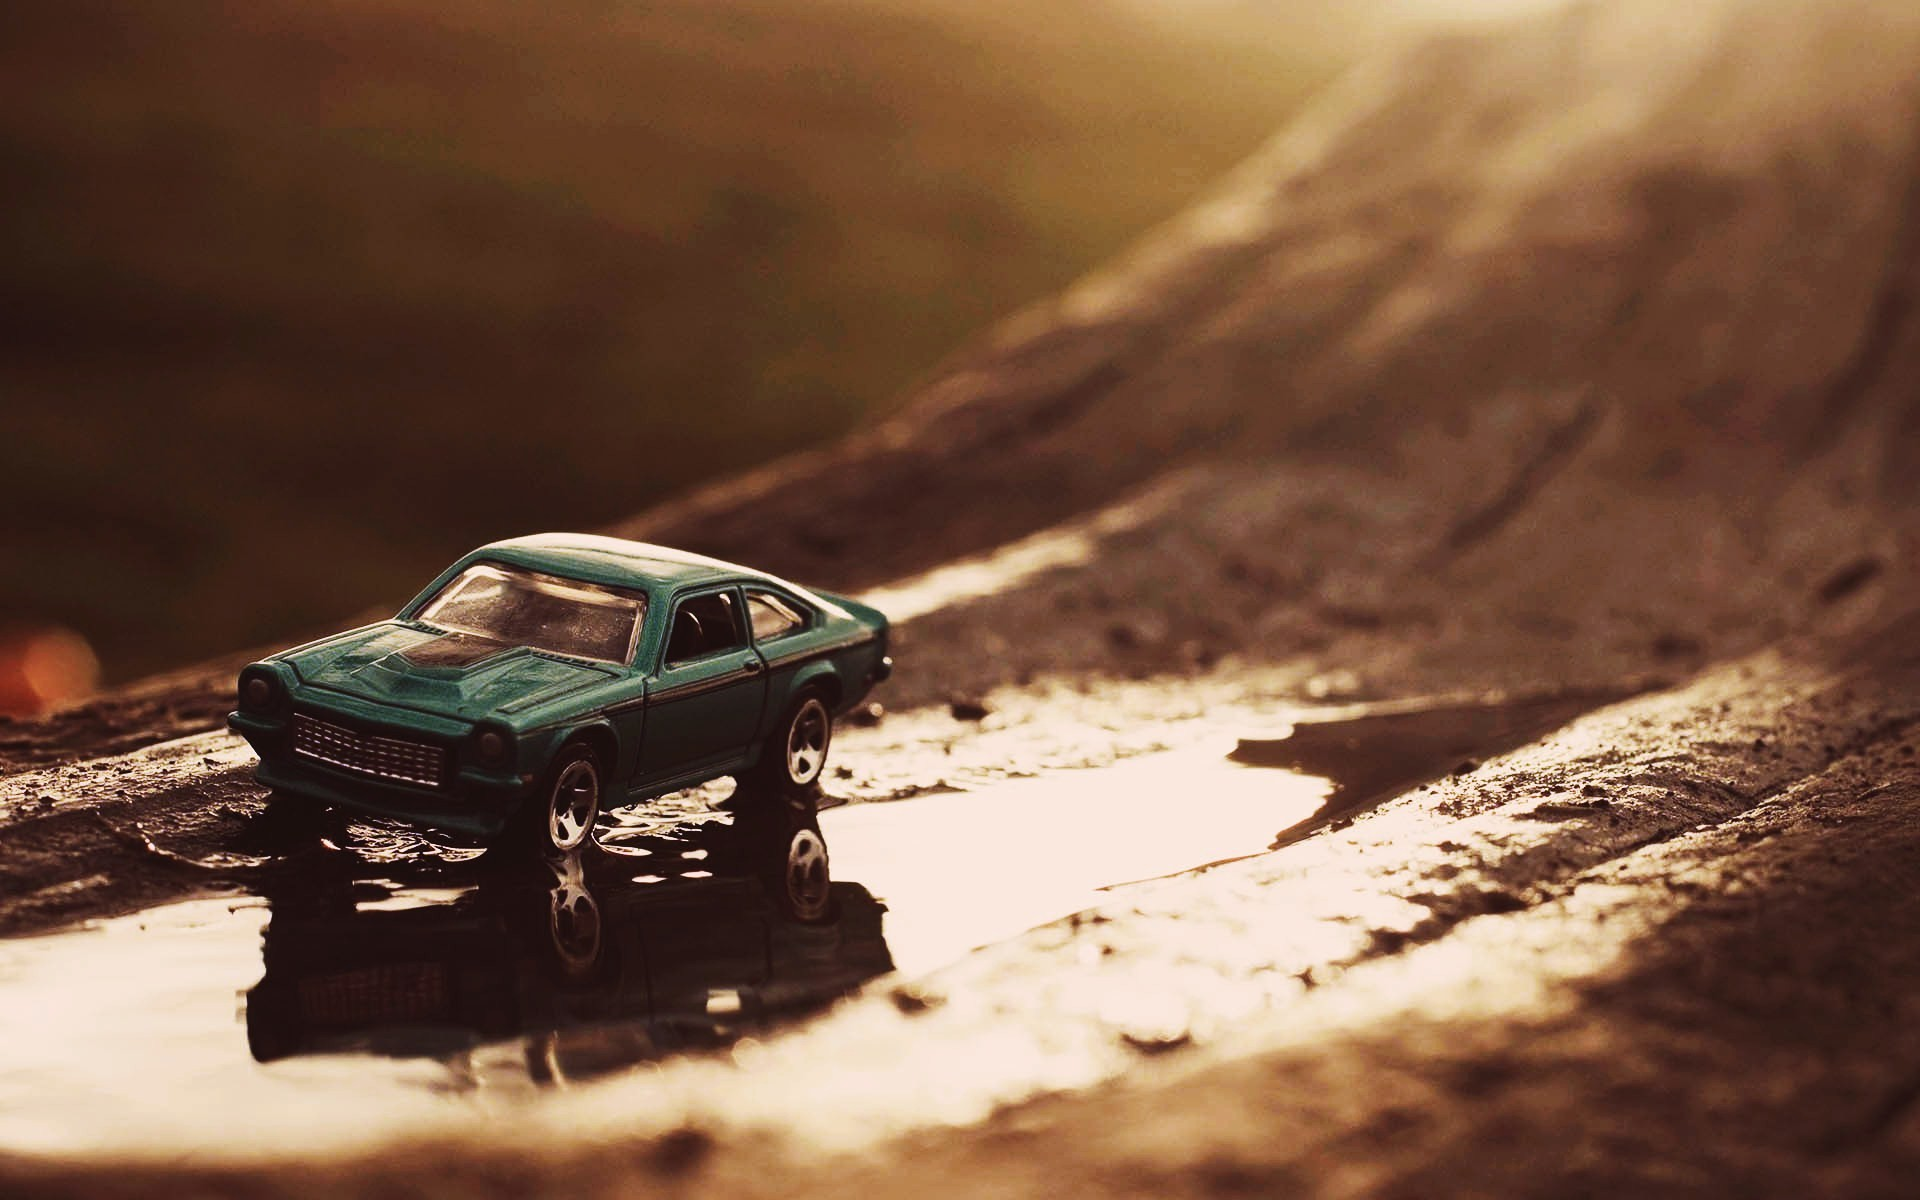 Ford Mustang Toy Macro, HD Cars, 4k Wallpapers, Images, Backgrounds ...